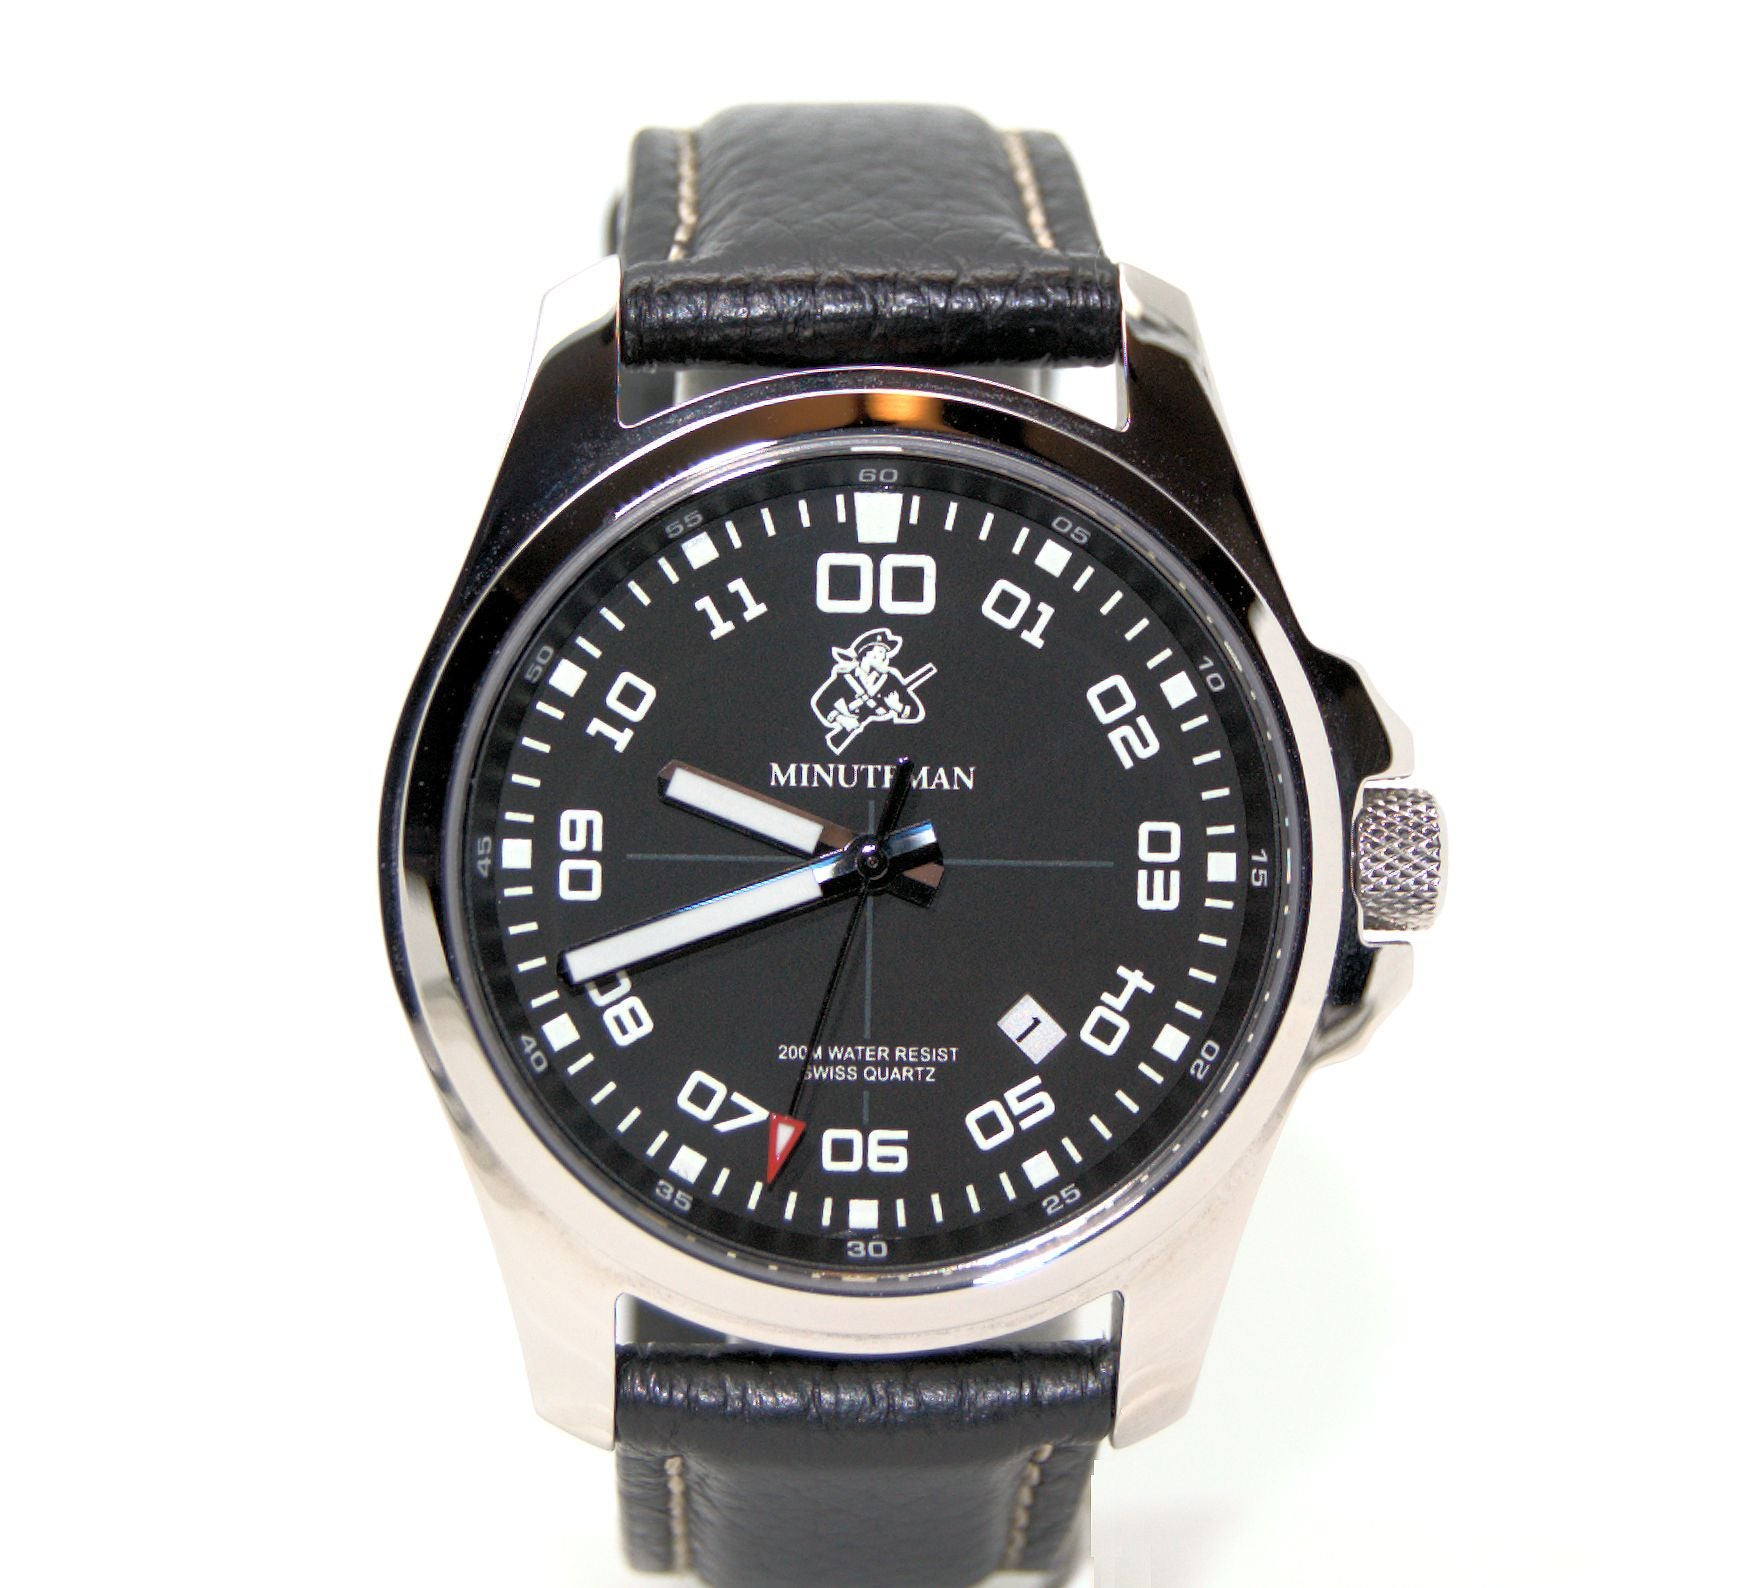 Minuteman Self Winding MM04 Watch Black Leather Strap,minutemanwatches,Minuteman,Wrist Watch